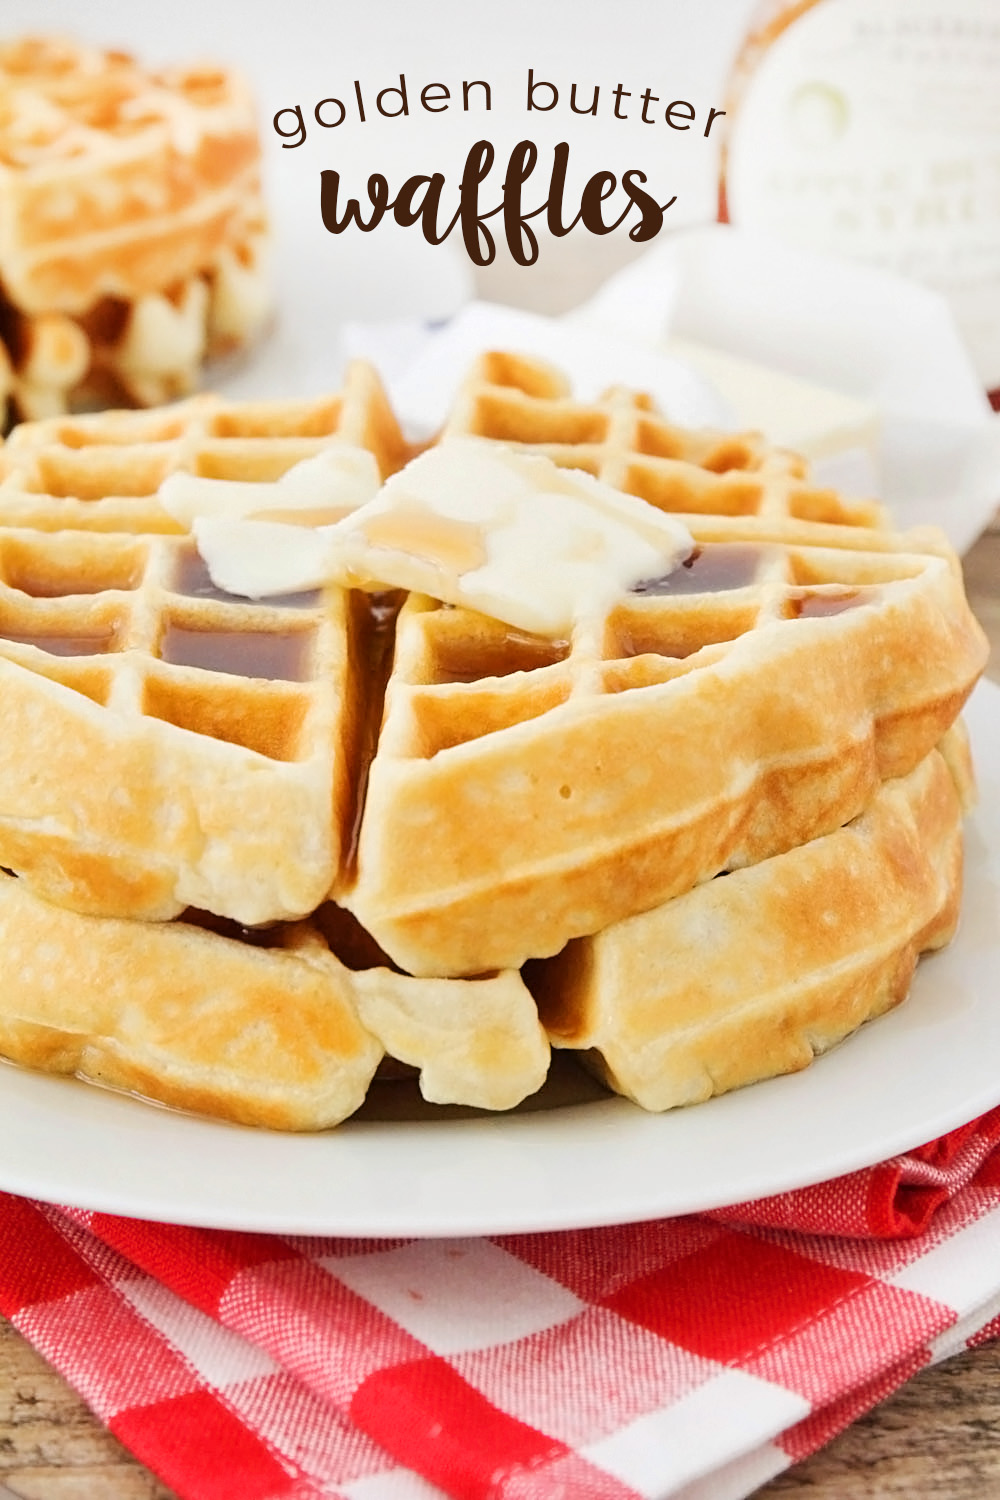 These amazing homemade golden butter waffles are crisp on the outside, fluffy on the inside, and so delicious!